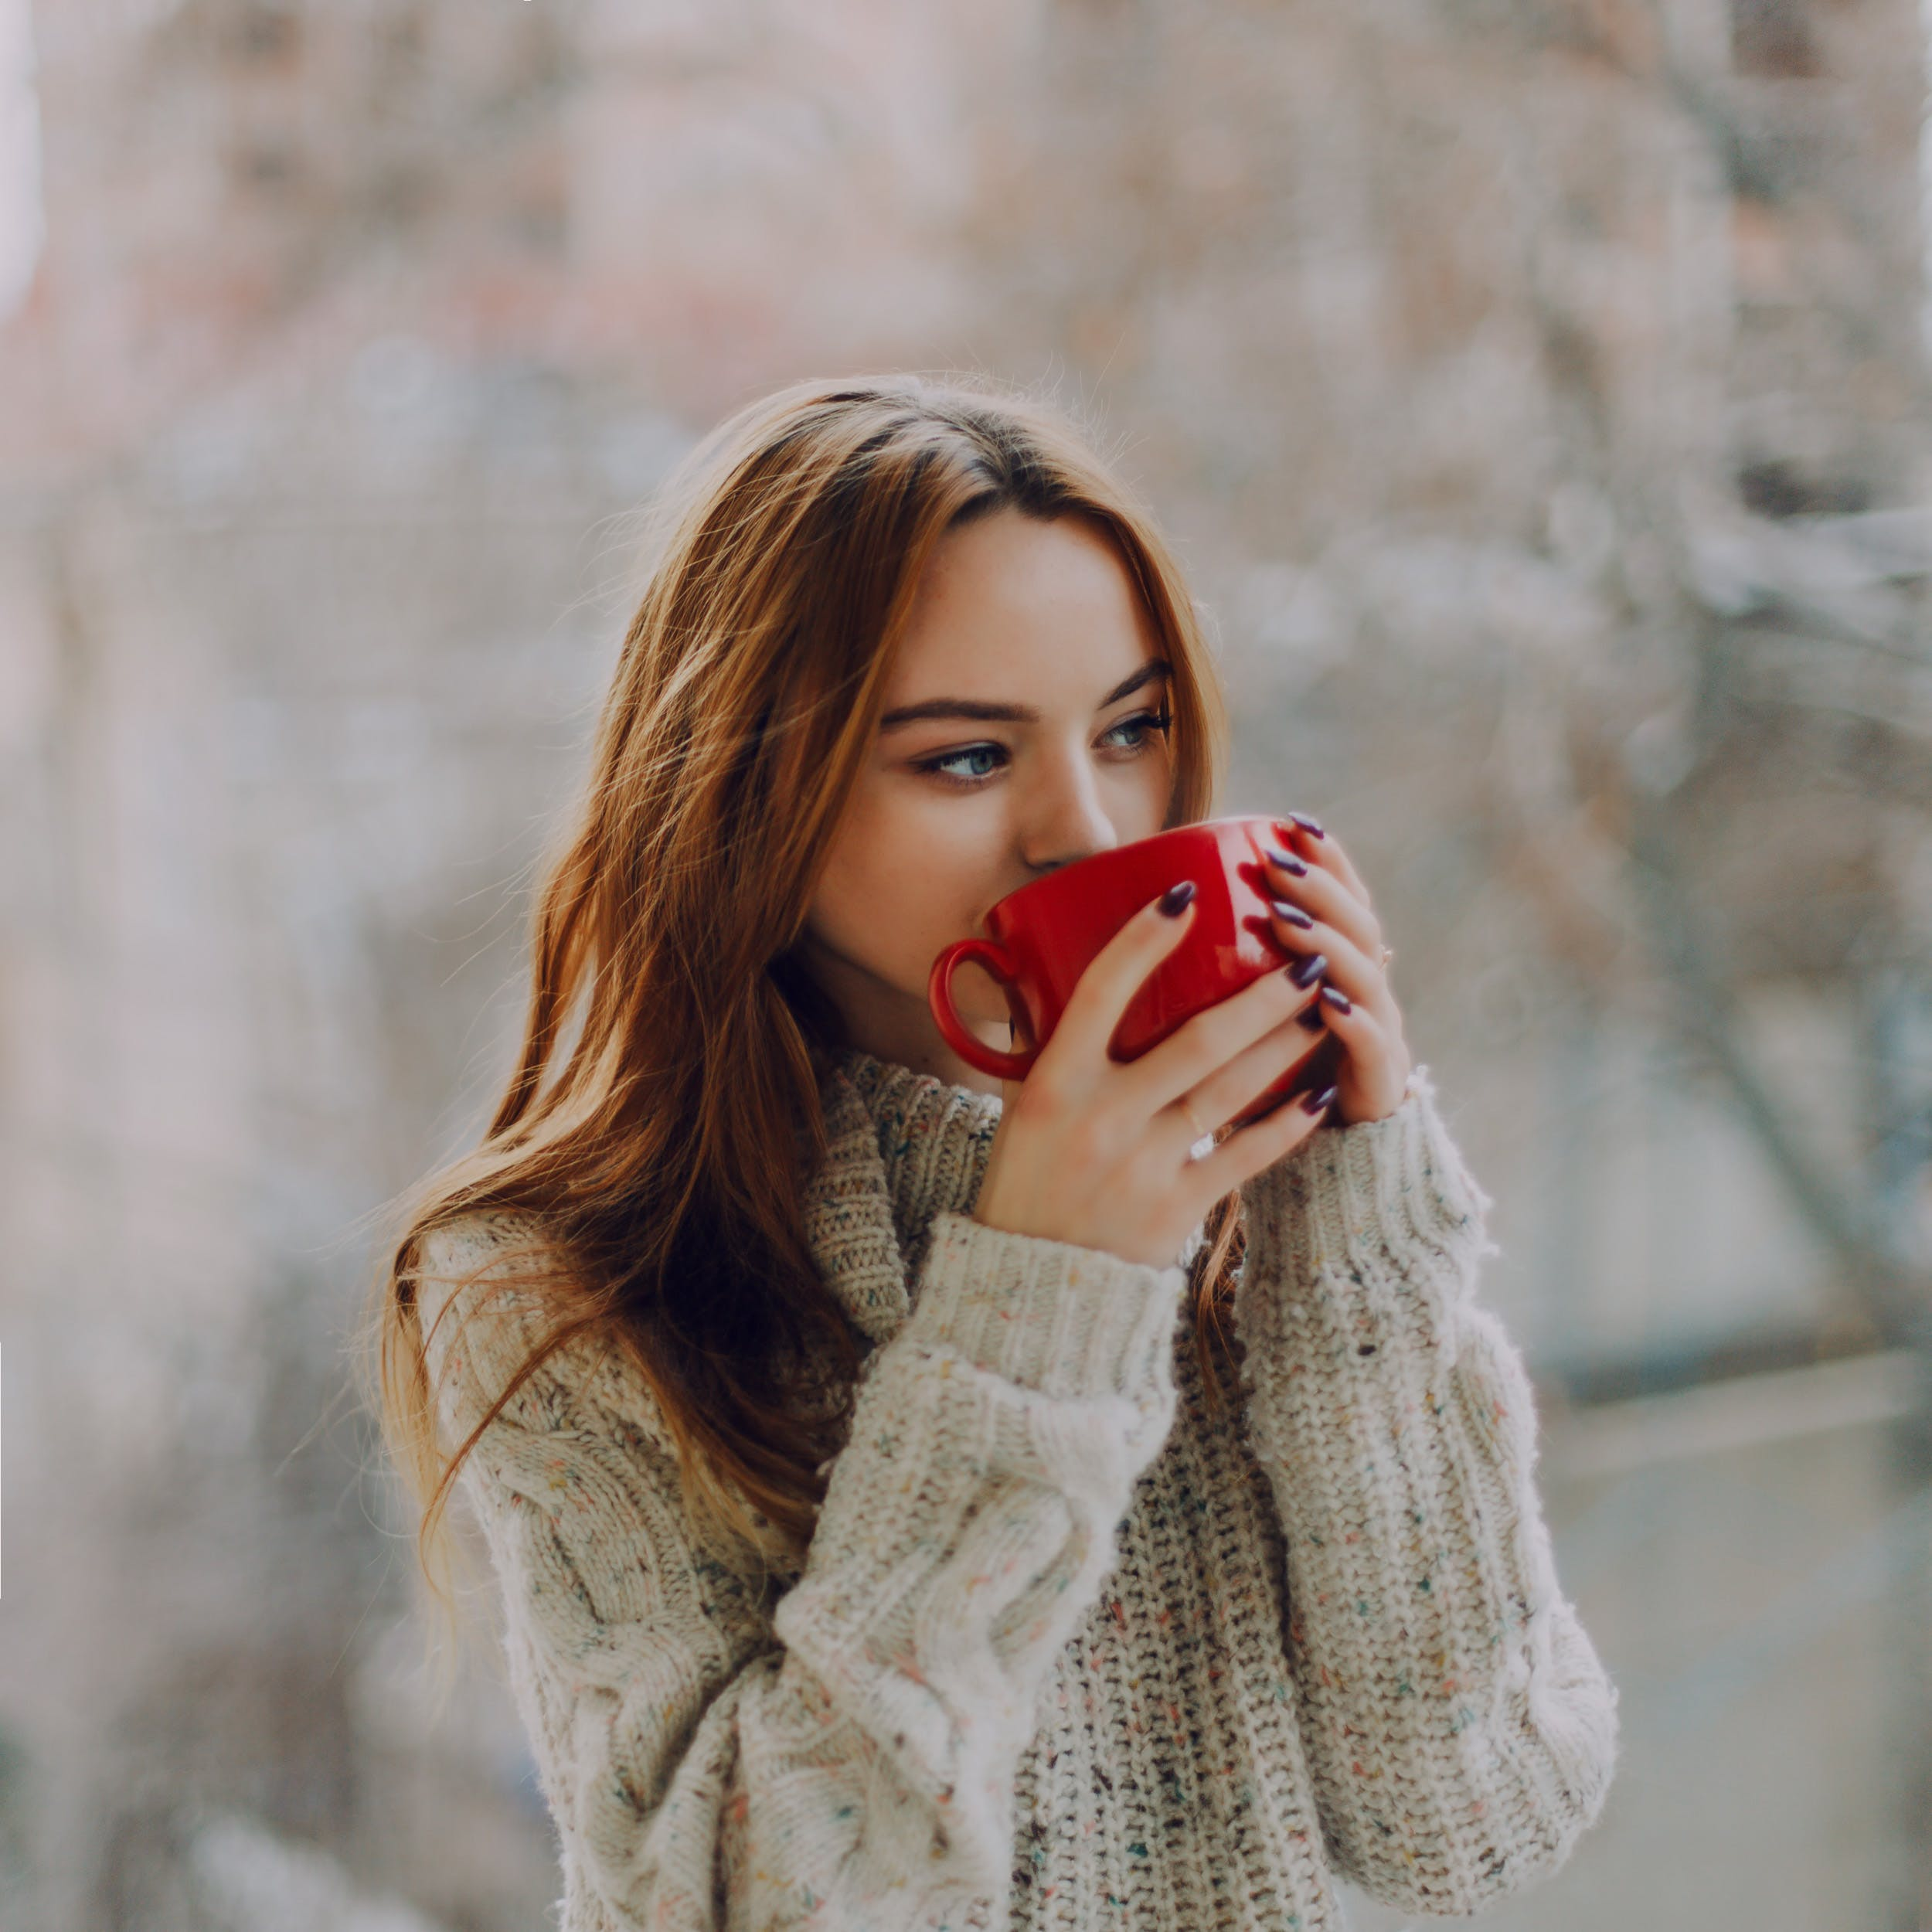 Selective Focus Photography of Woman Holding Red Ceramic Cup